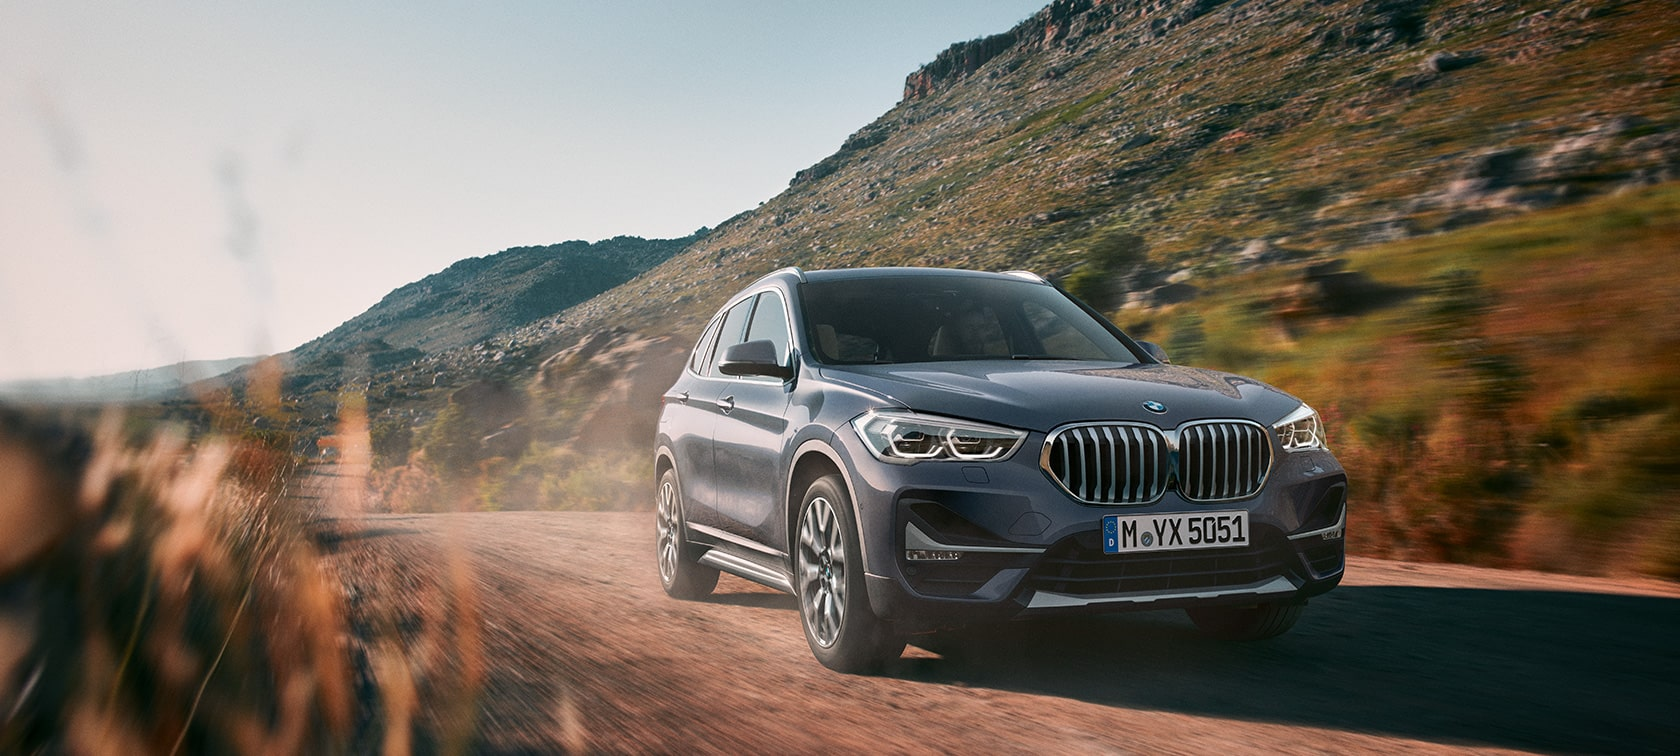 Bmw X1 The Flexible And Dynamic Sav Bmw South Africa